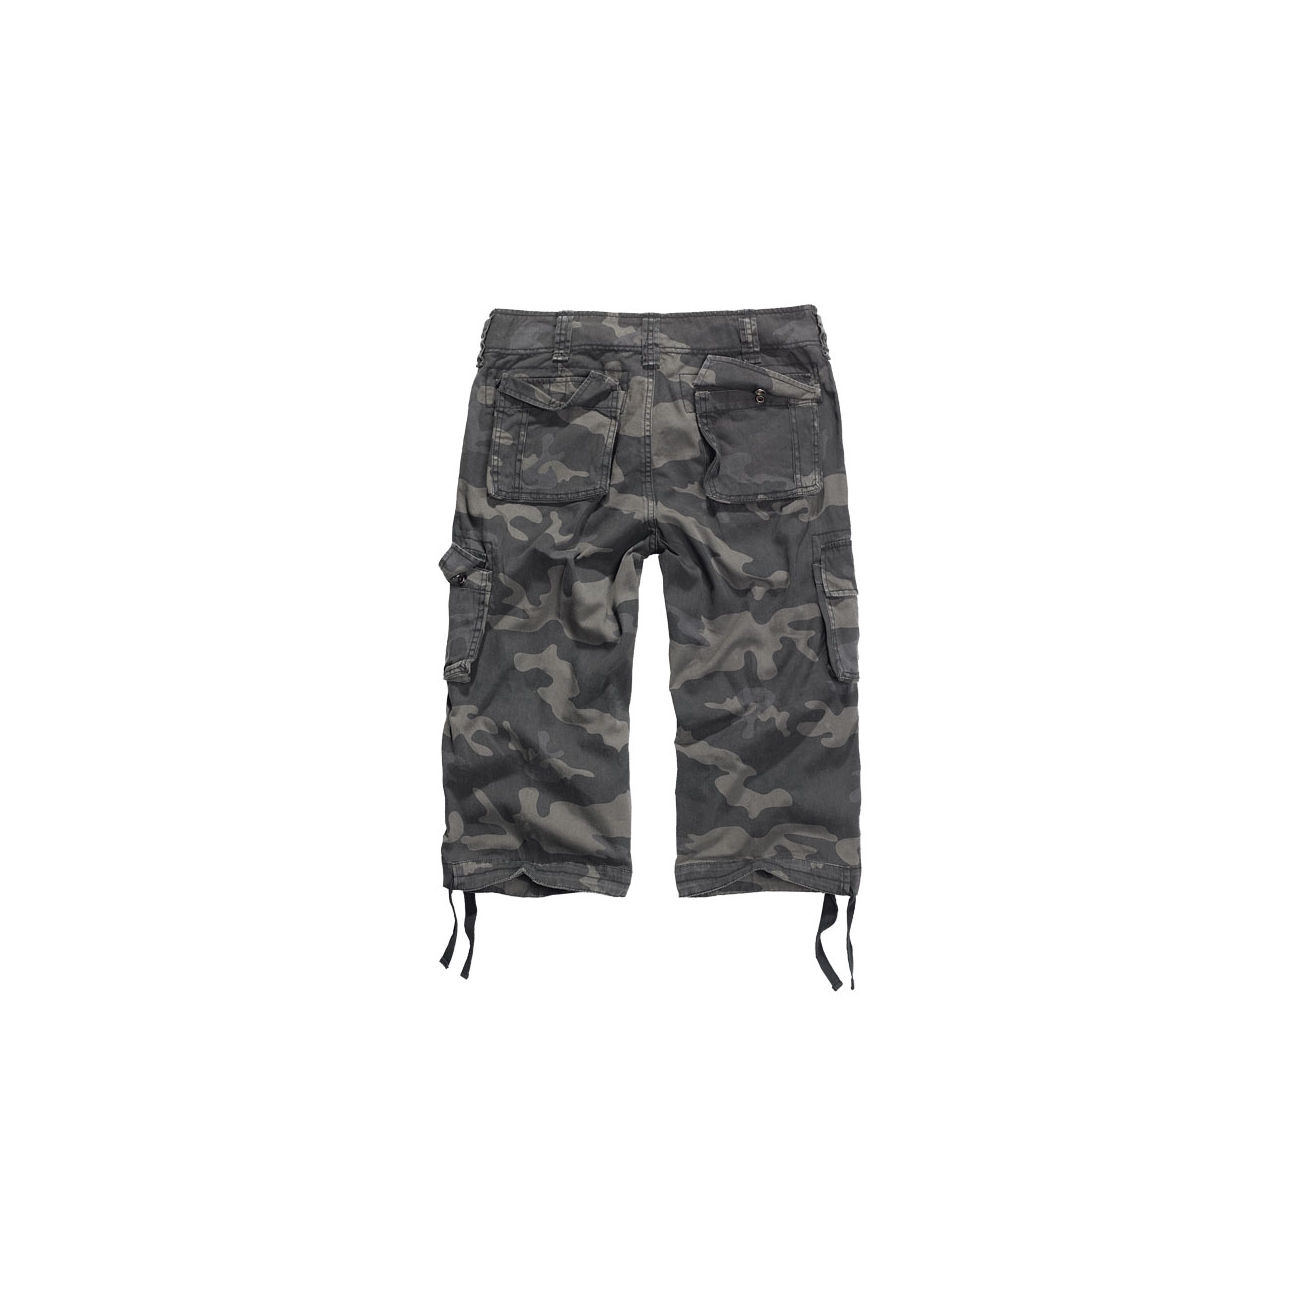 Brandit Urban Legend 3/4 Short darkcamo 1